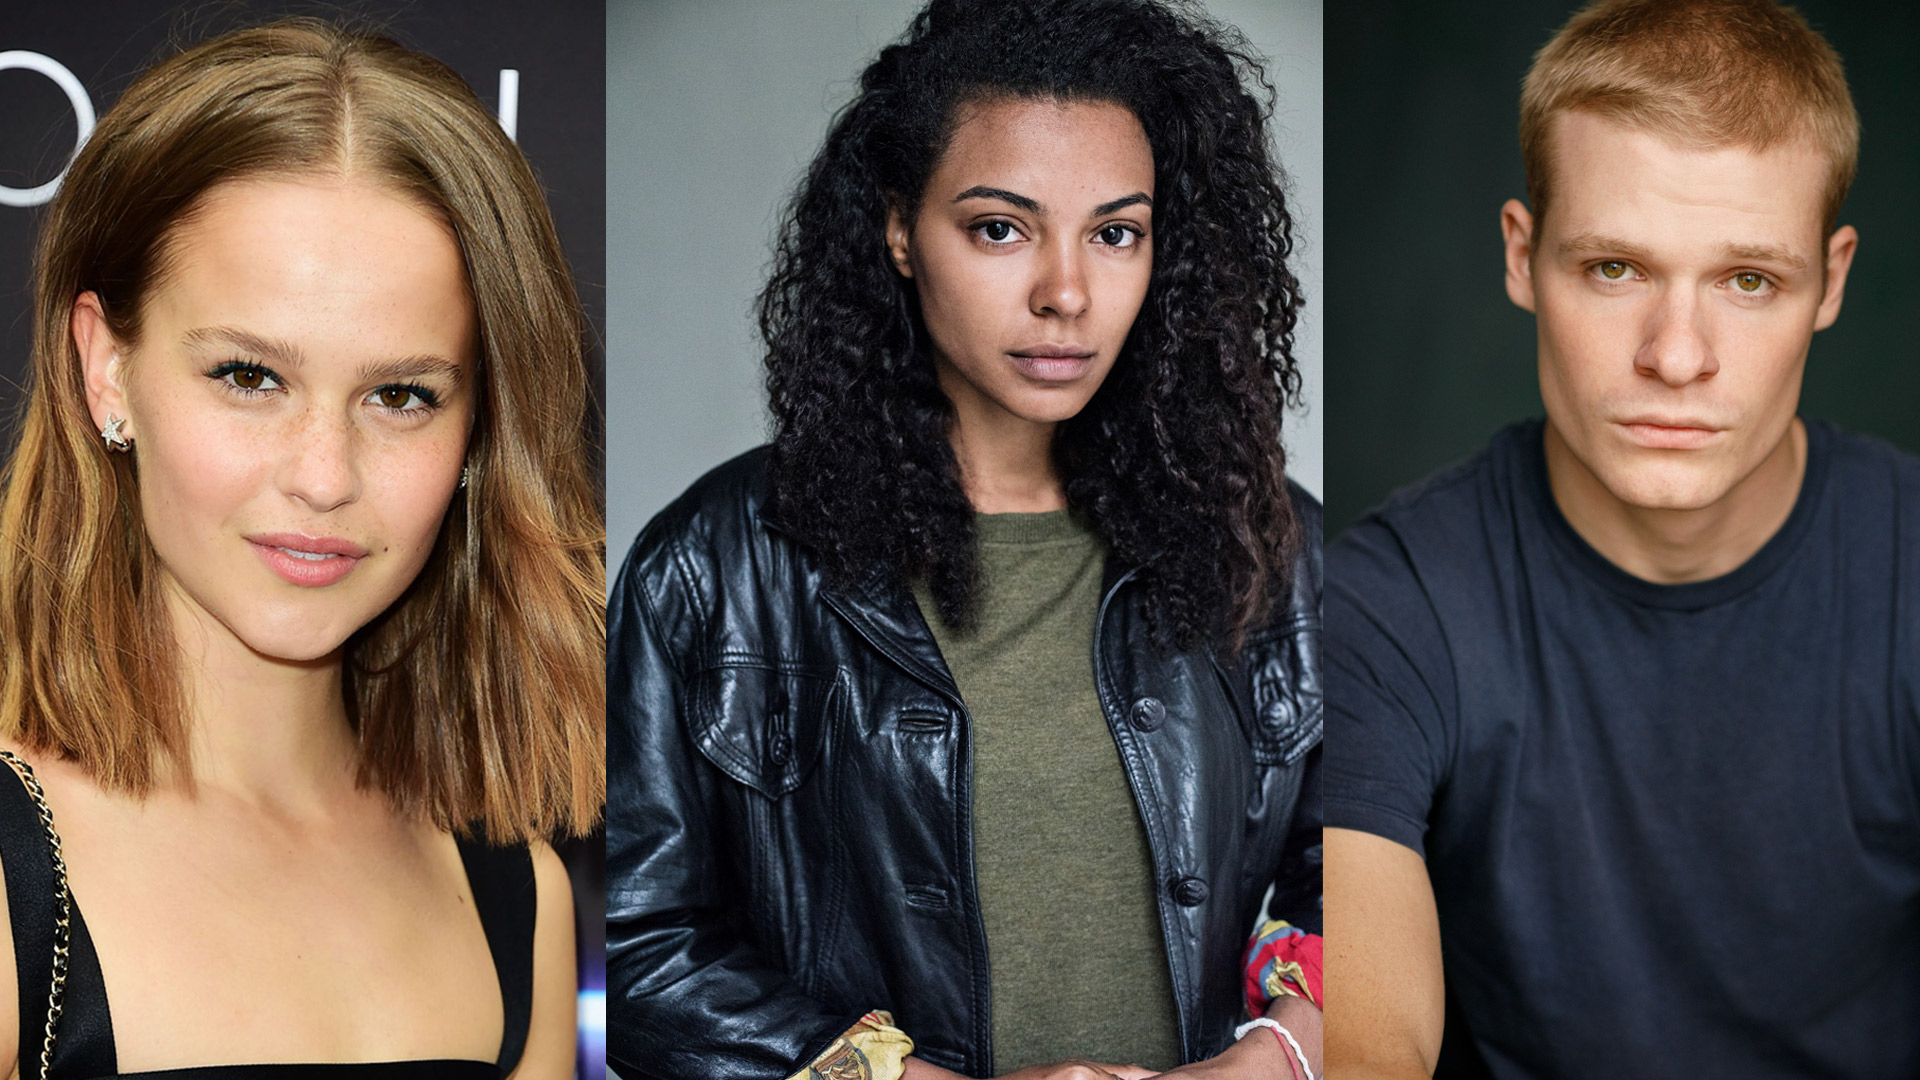 Film Buddy provides first employment opportunities for recent graduates on Sky Studios Supernatural Thriller 'The Rising'